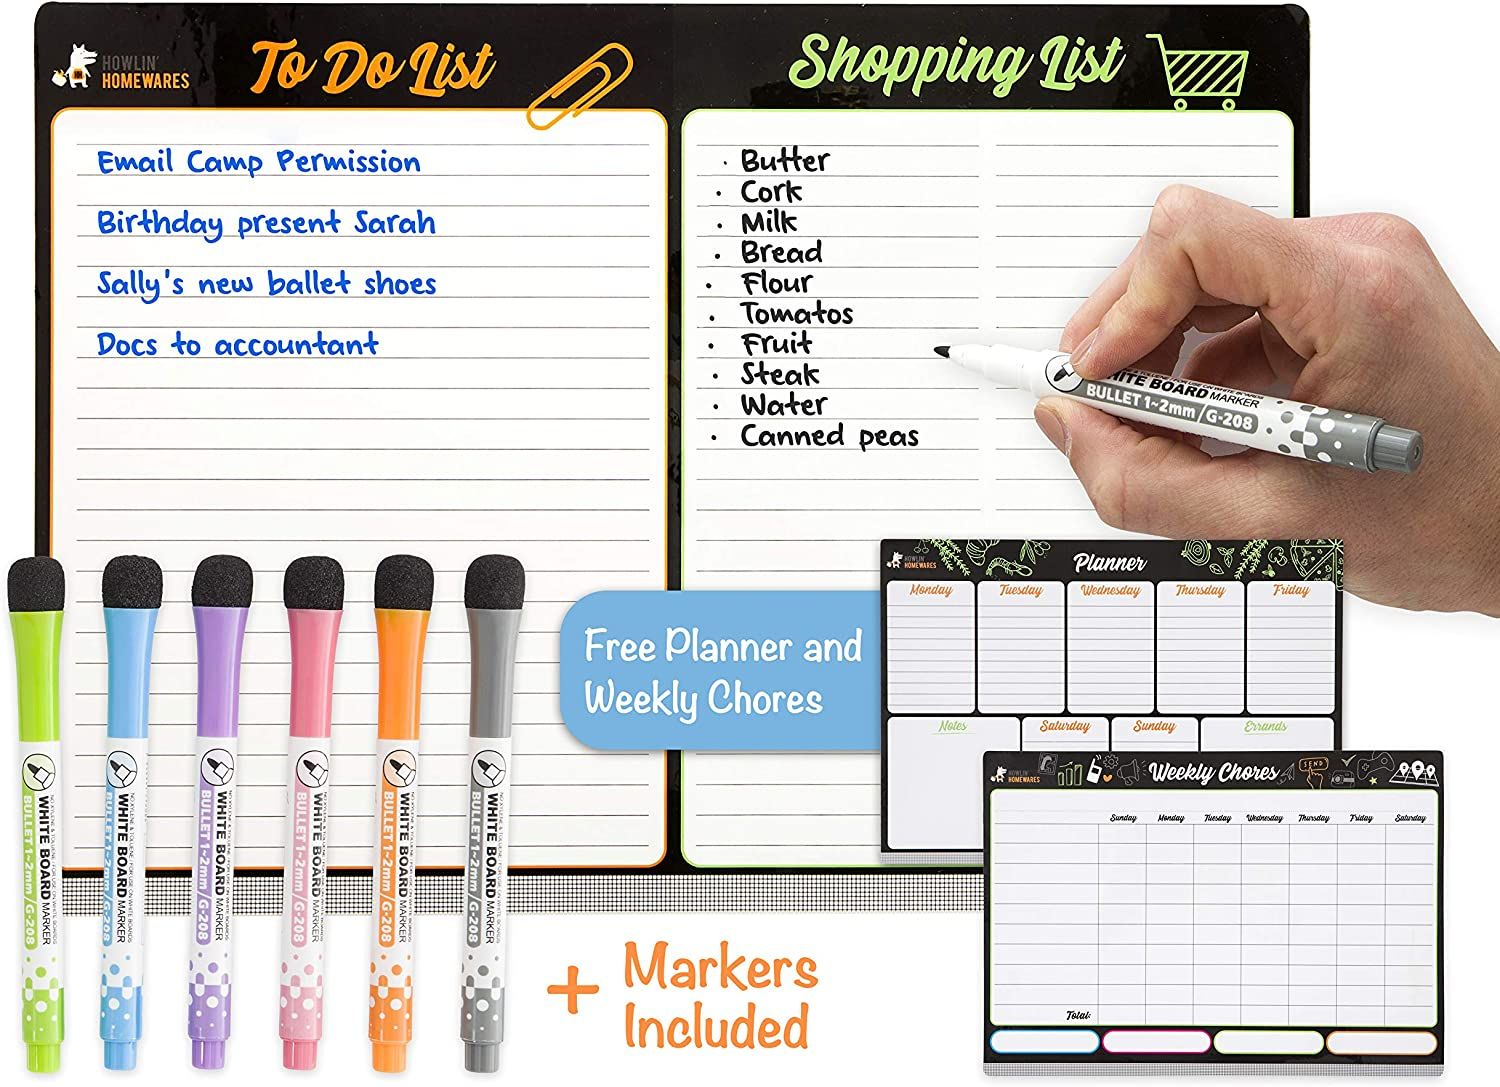 Howlin' Homewares Magnetic Dry Erase Board for Refrigerator - Weekly Planner, Weekly Chores, To Do List and Shopping List for Kitchen Fridge with Six Magnetic Fine Tip Pens with Eraser (8.27 × 11.69)